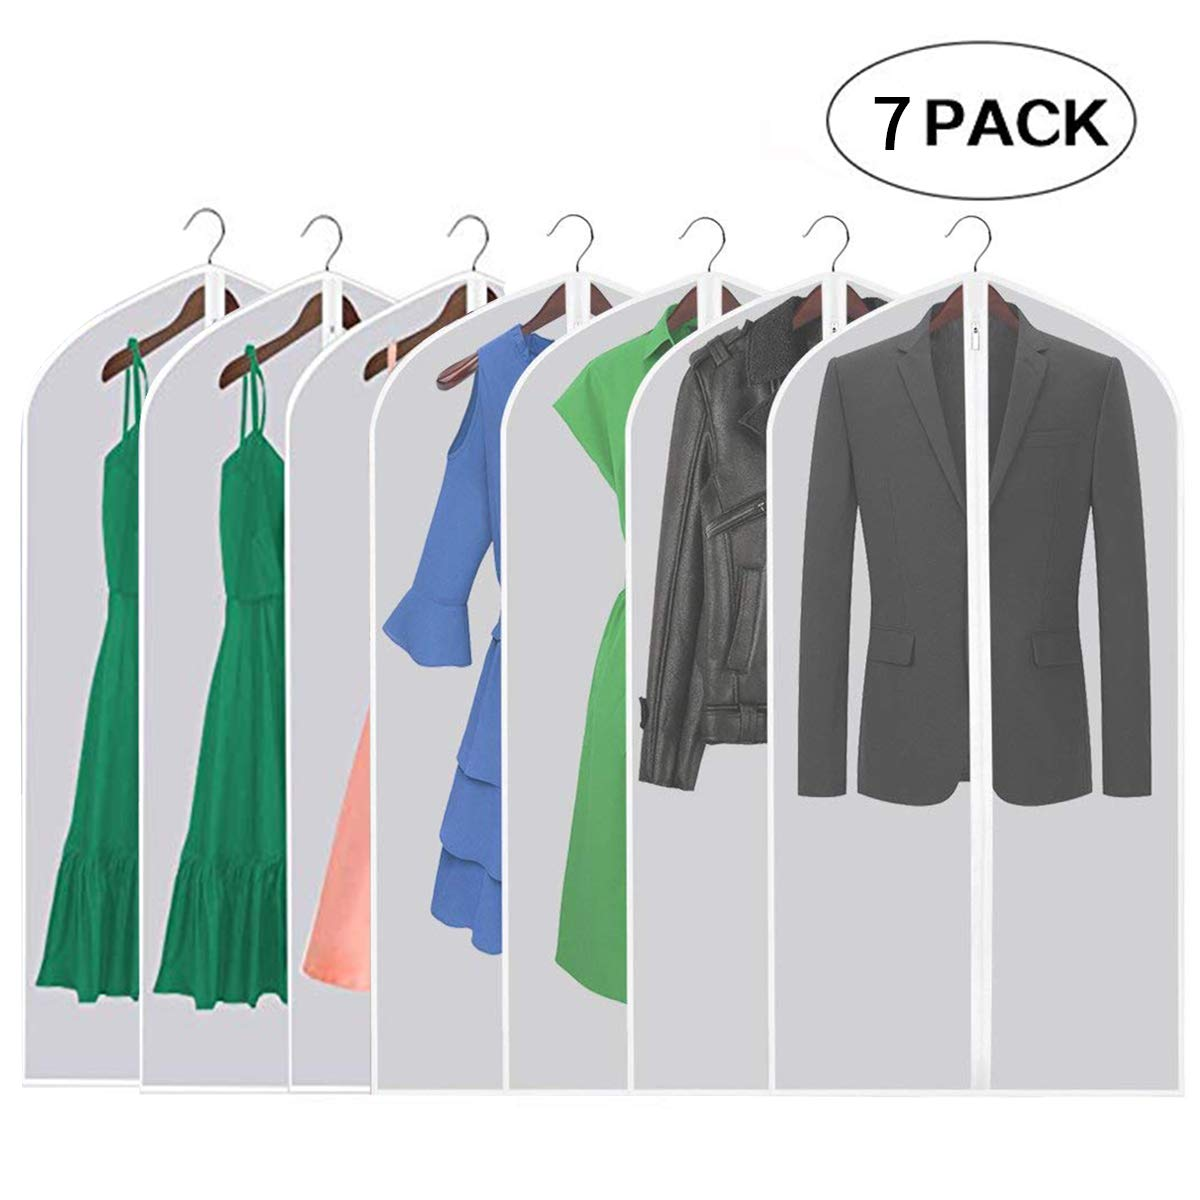 36534de62c3a Aufisi Garment Covers,Dustproof Clothes Covers Dampproof Waterproof  Washable Translucent Garment Bags with Full Zipper Dress Cover 47